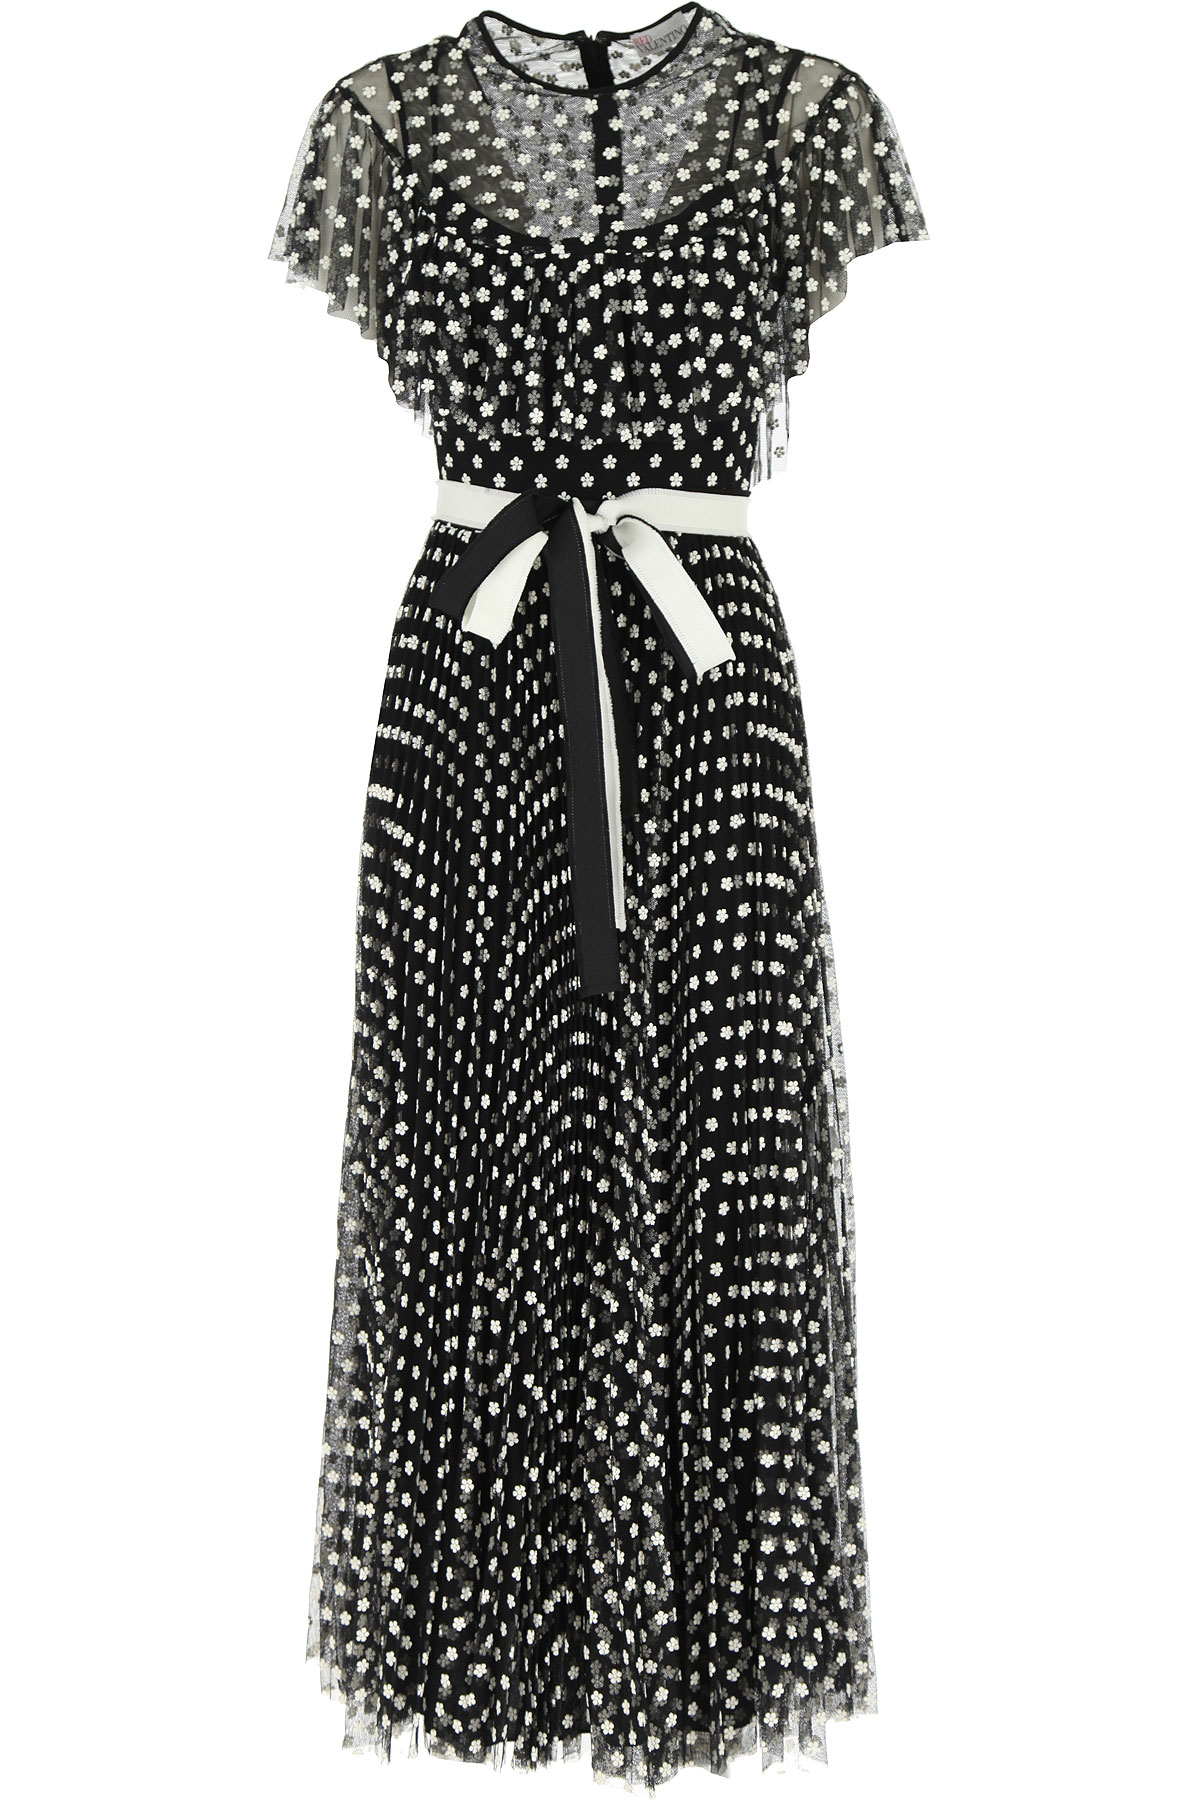 RED Valentino Dress for Women, Evening Cocktail Party On Sale, Black, polyestere, 2019, 4 6 8